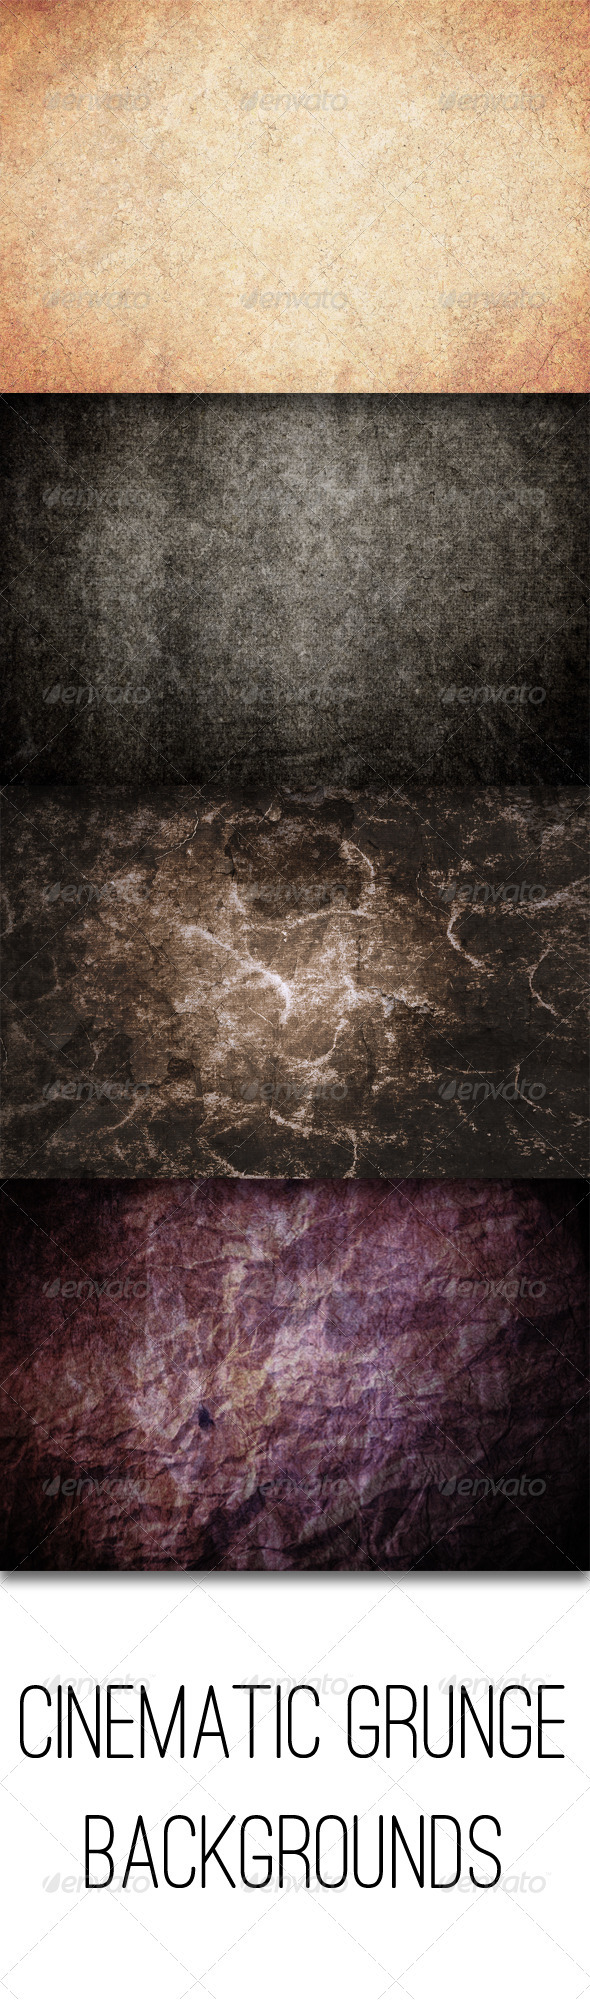 GraphicRiver Cinematic Grunge Backgrounds 3659614